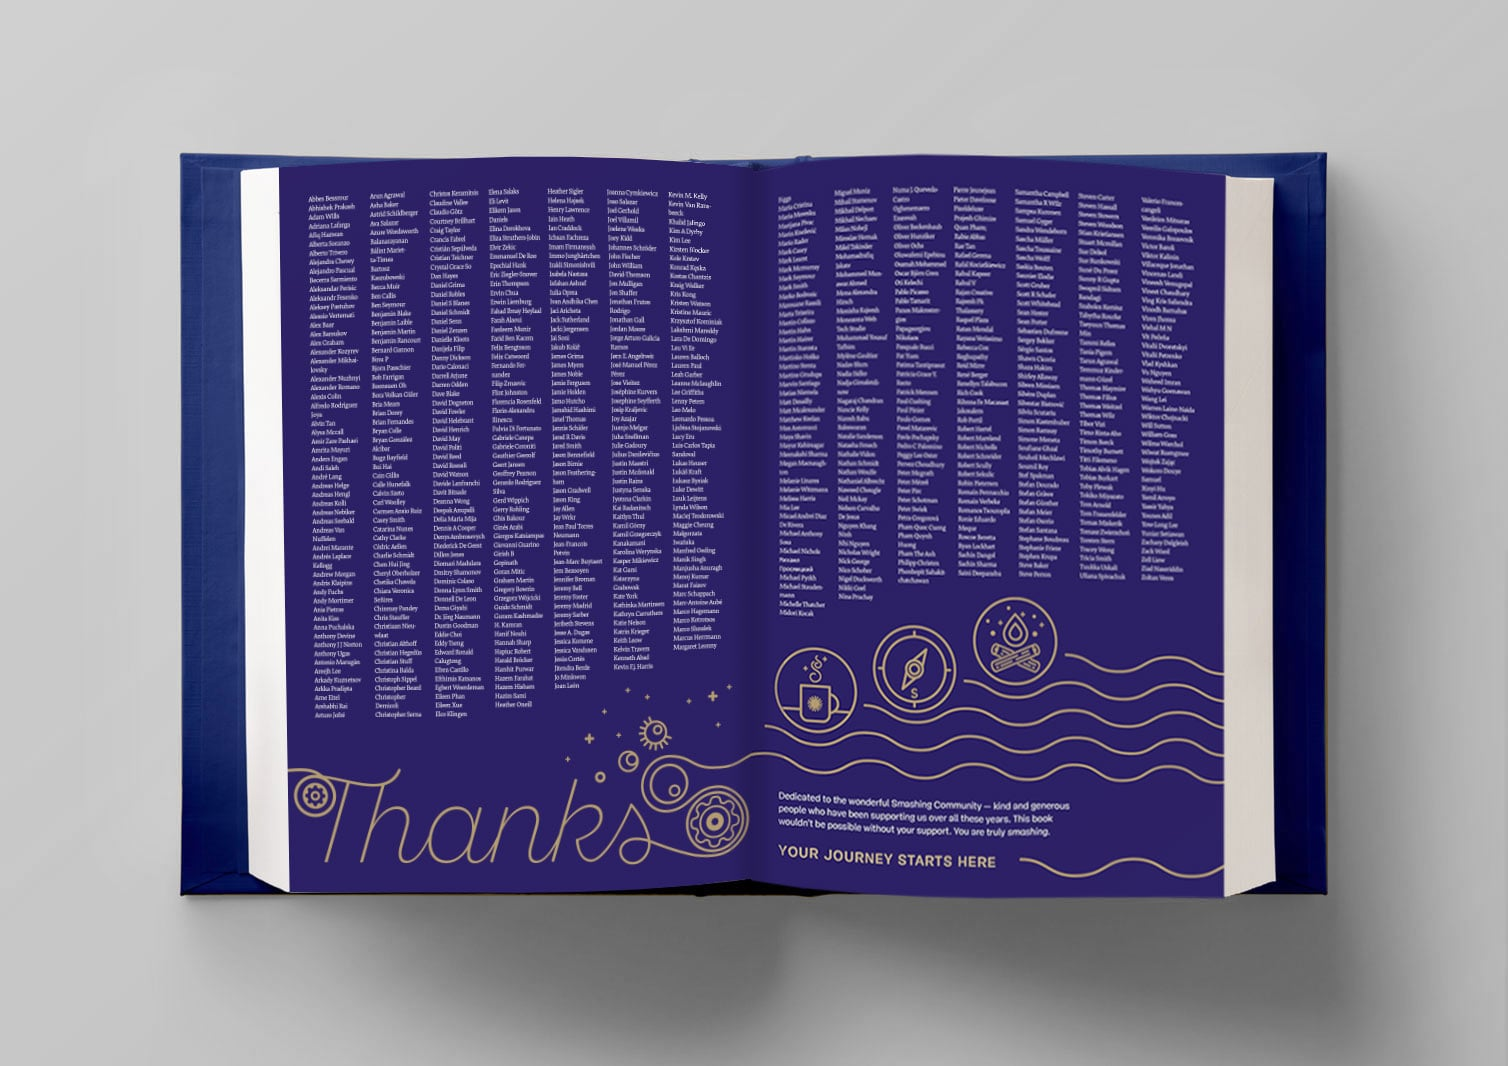 Fresh Web Design Ideas for Your Website [Smashing Book 6] - smashing book 6 interior thank you pages